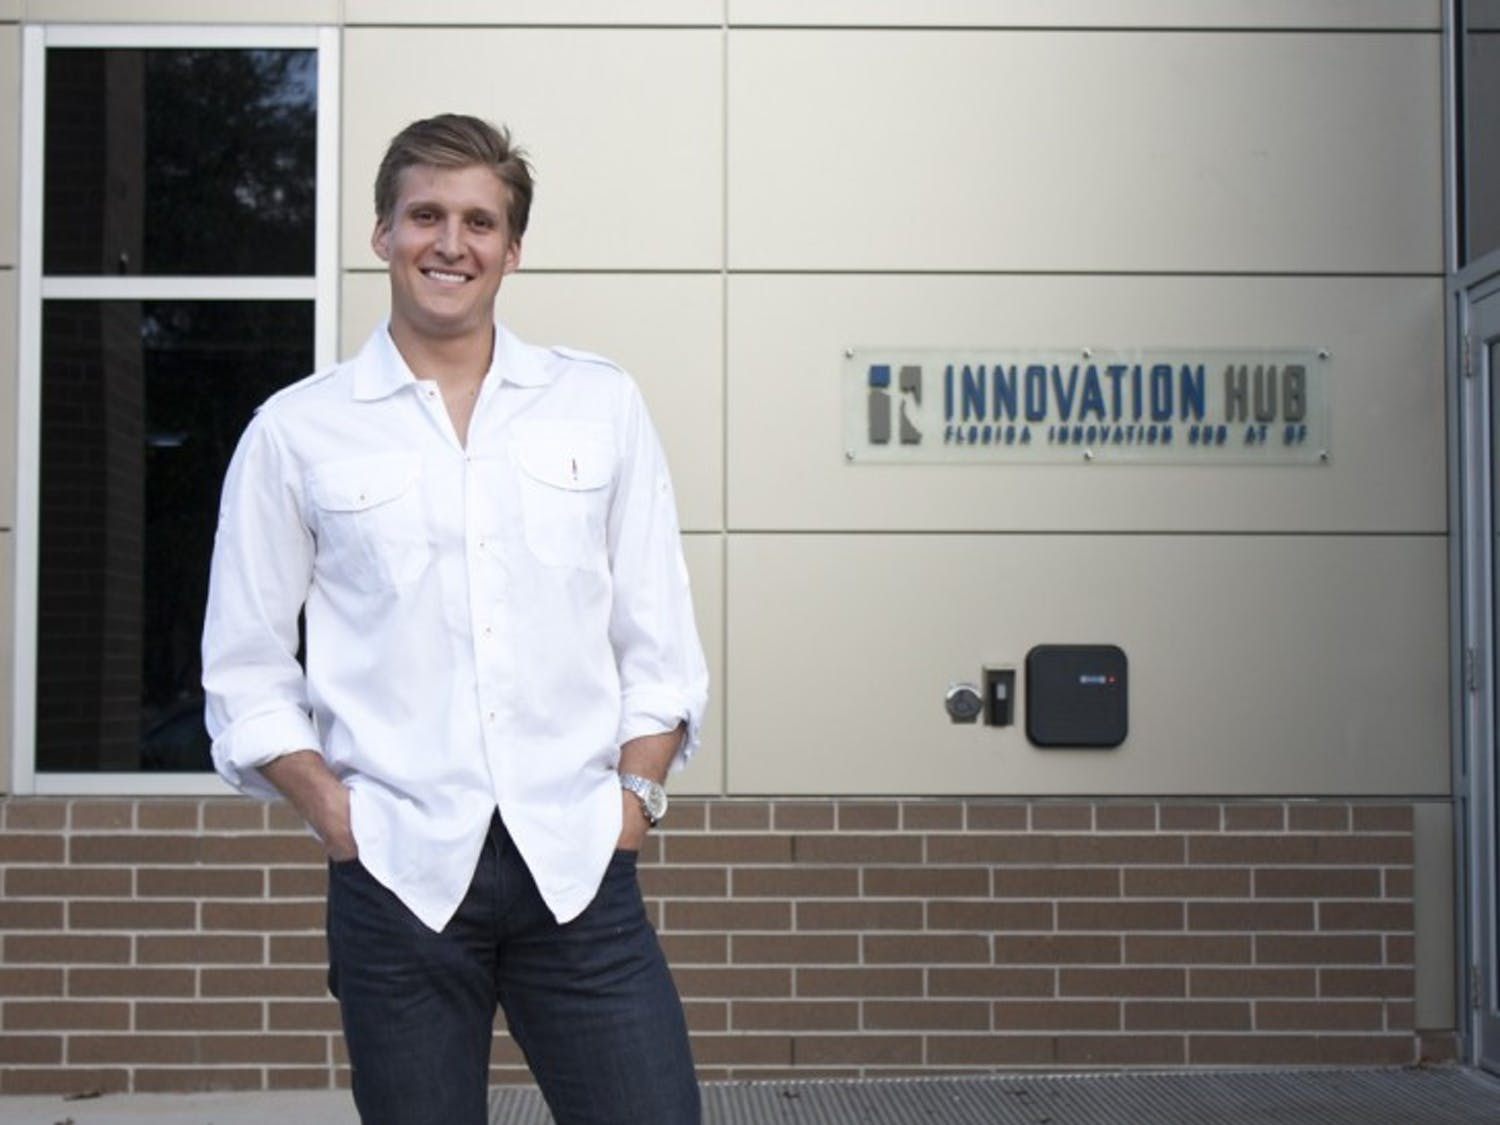 Jordan Johnson poses for a picture Friday evening at the Innovation Hub in downtown Gainesville.